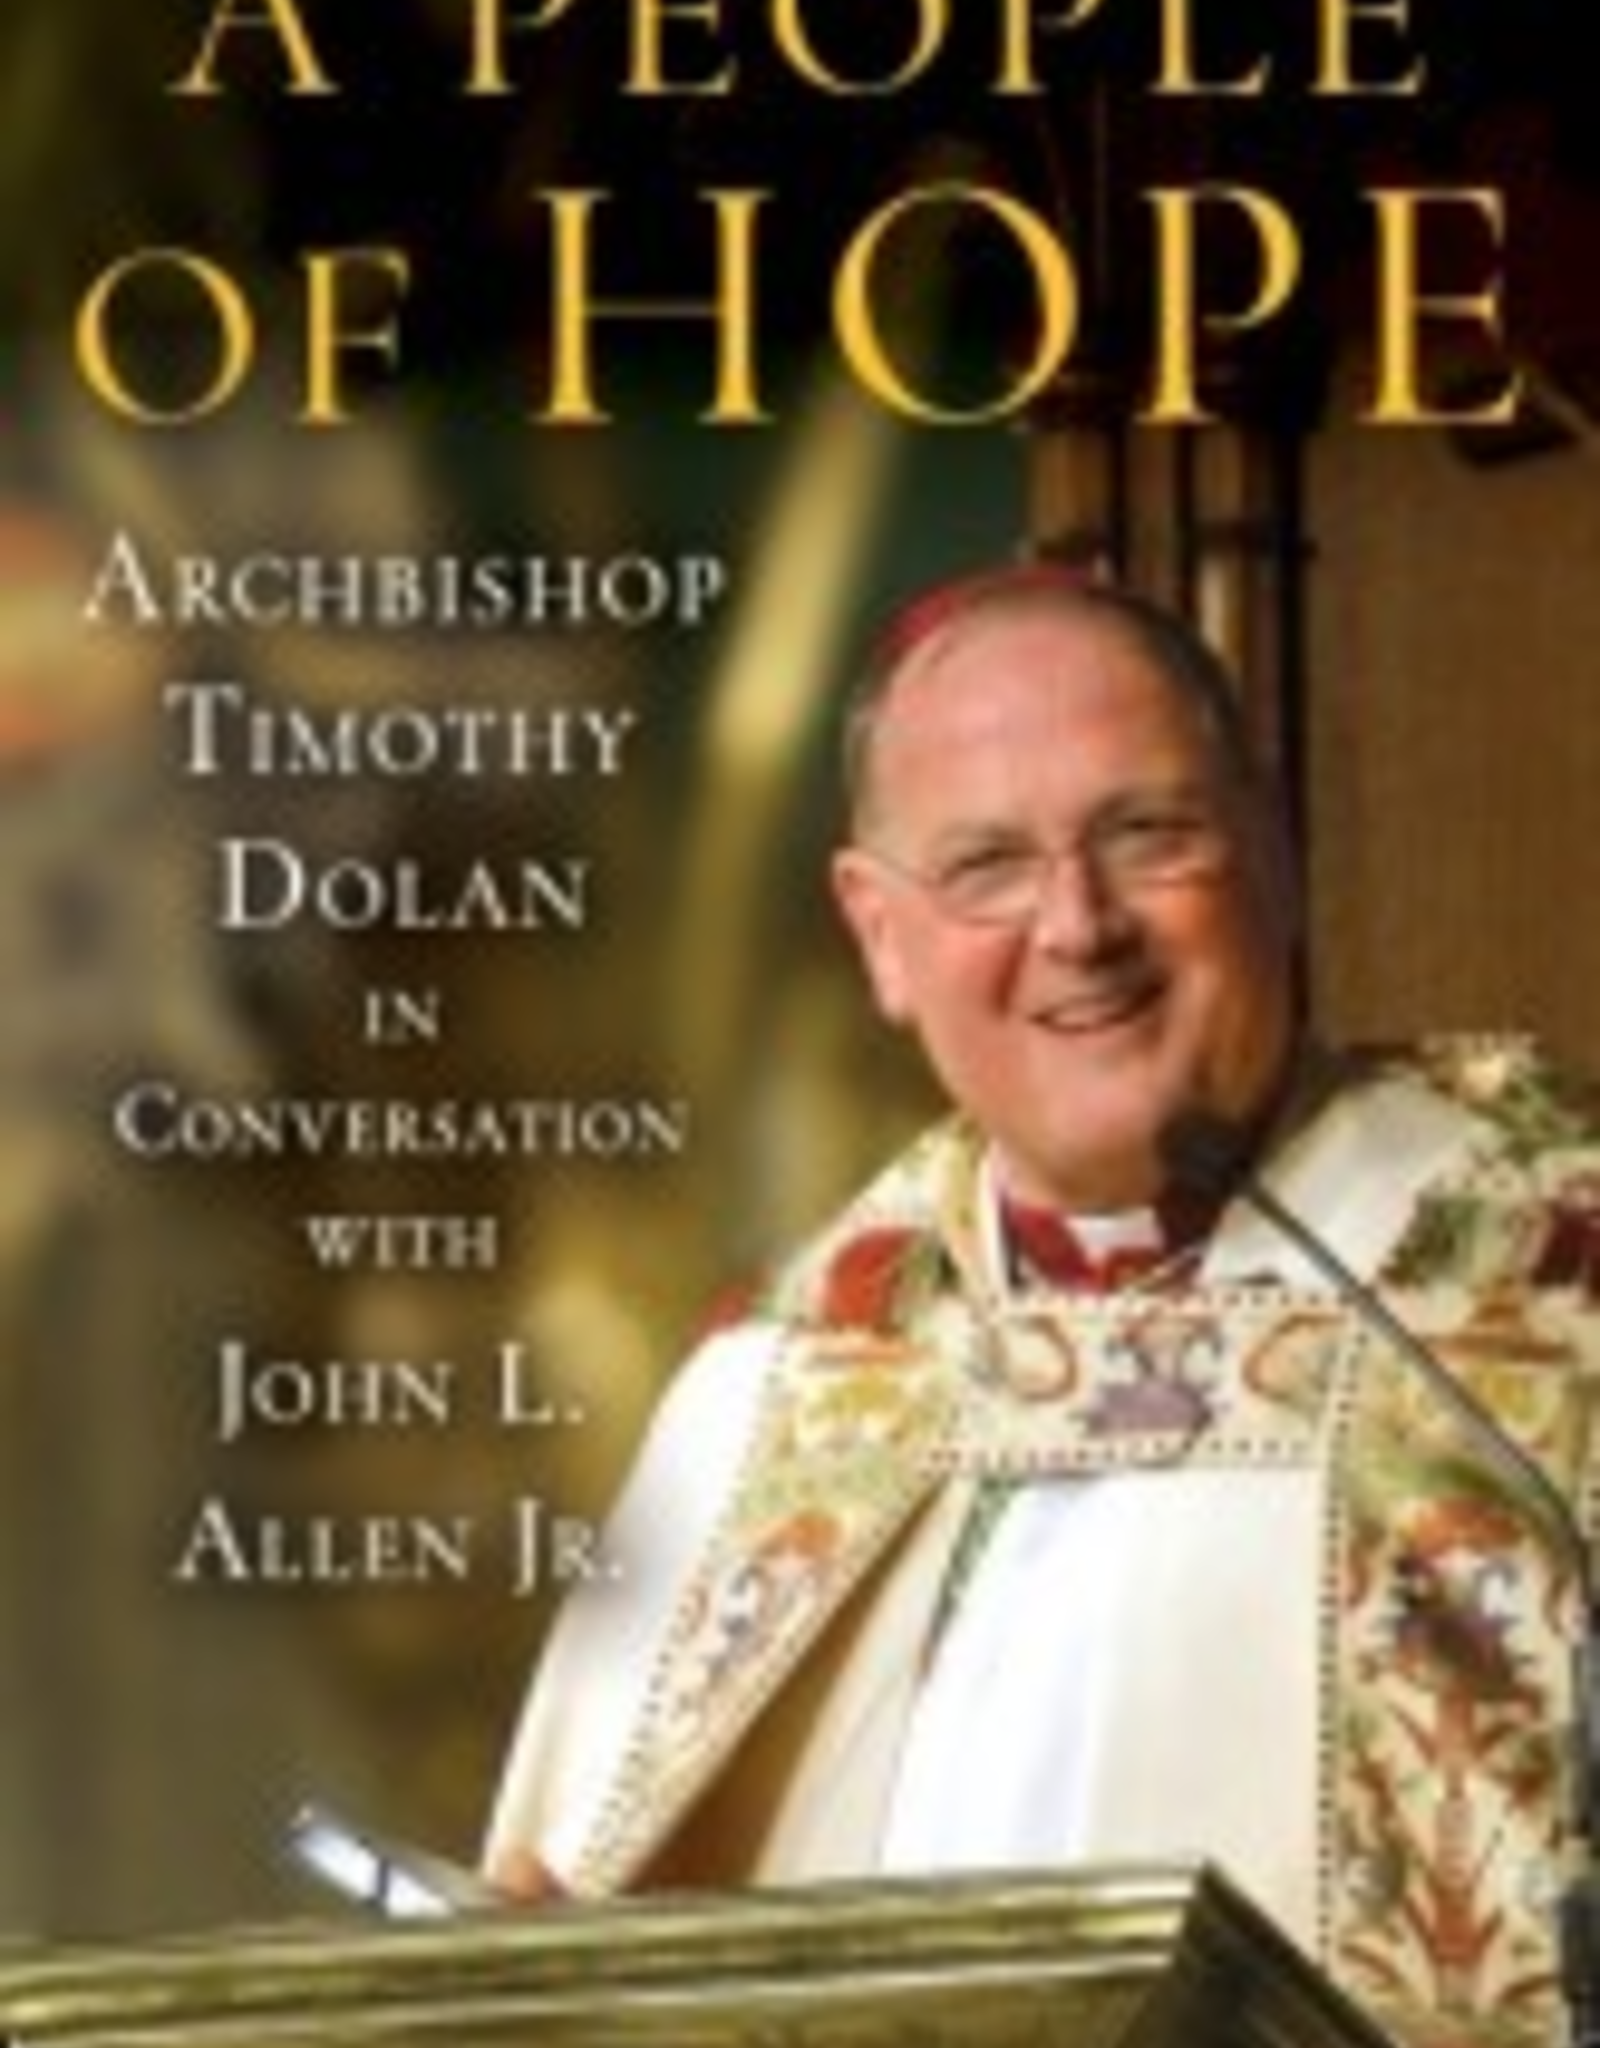 Random House A People of Hope: Archbishop Timothy Dolan in Conversation with John L. Allen Jr., by John L. Allen ( hardcover)